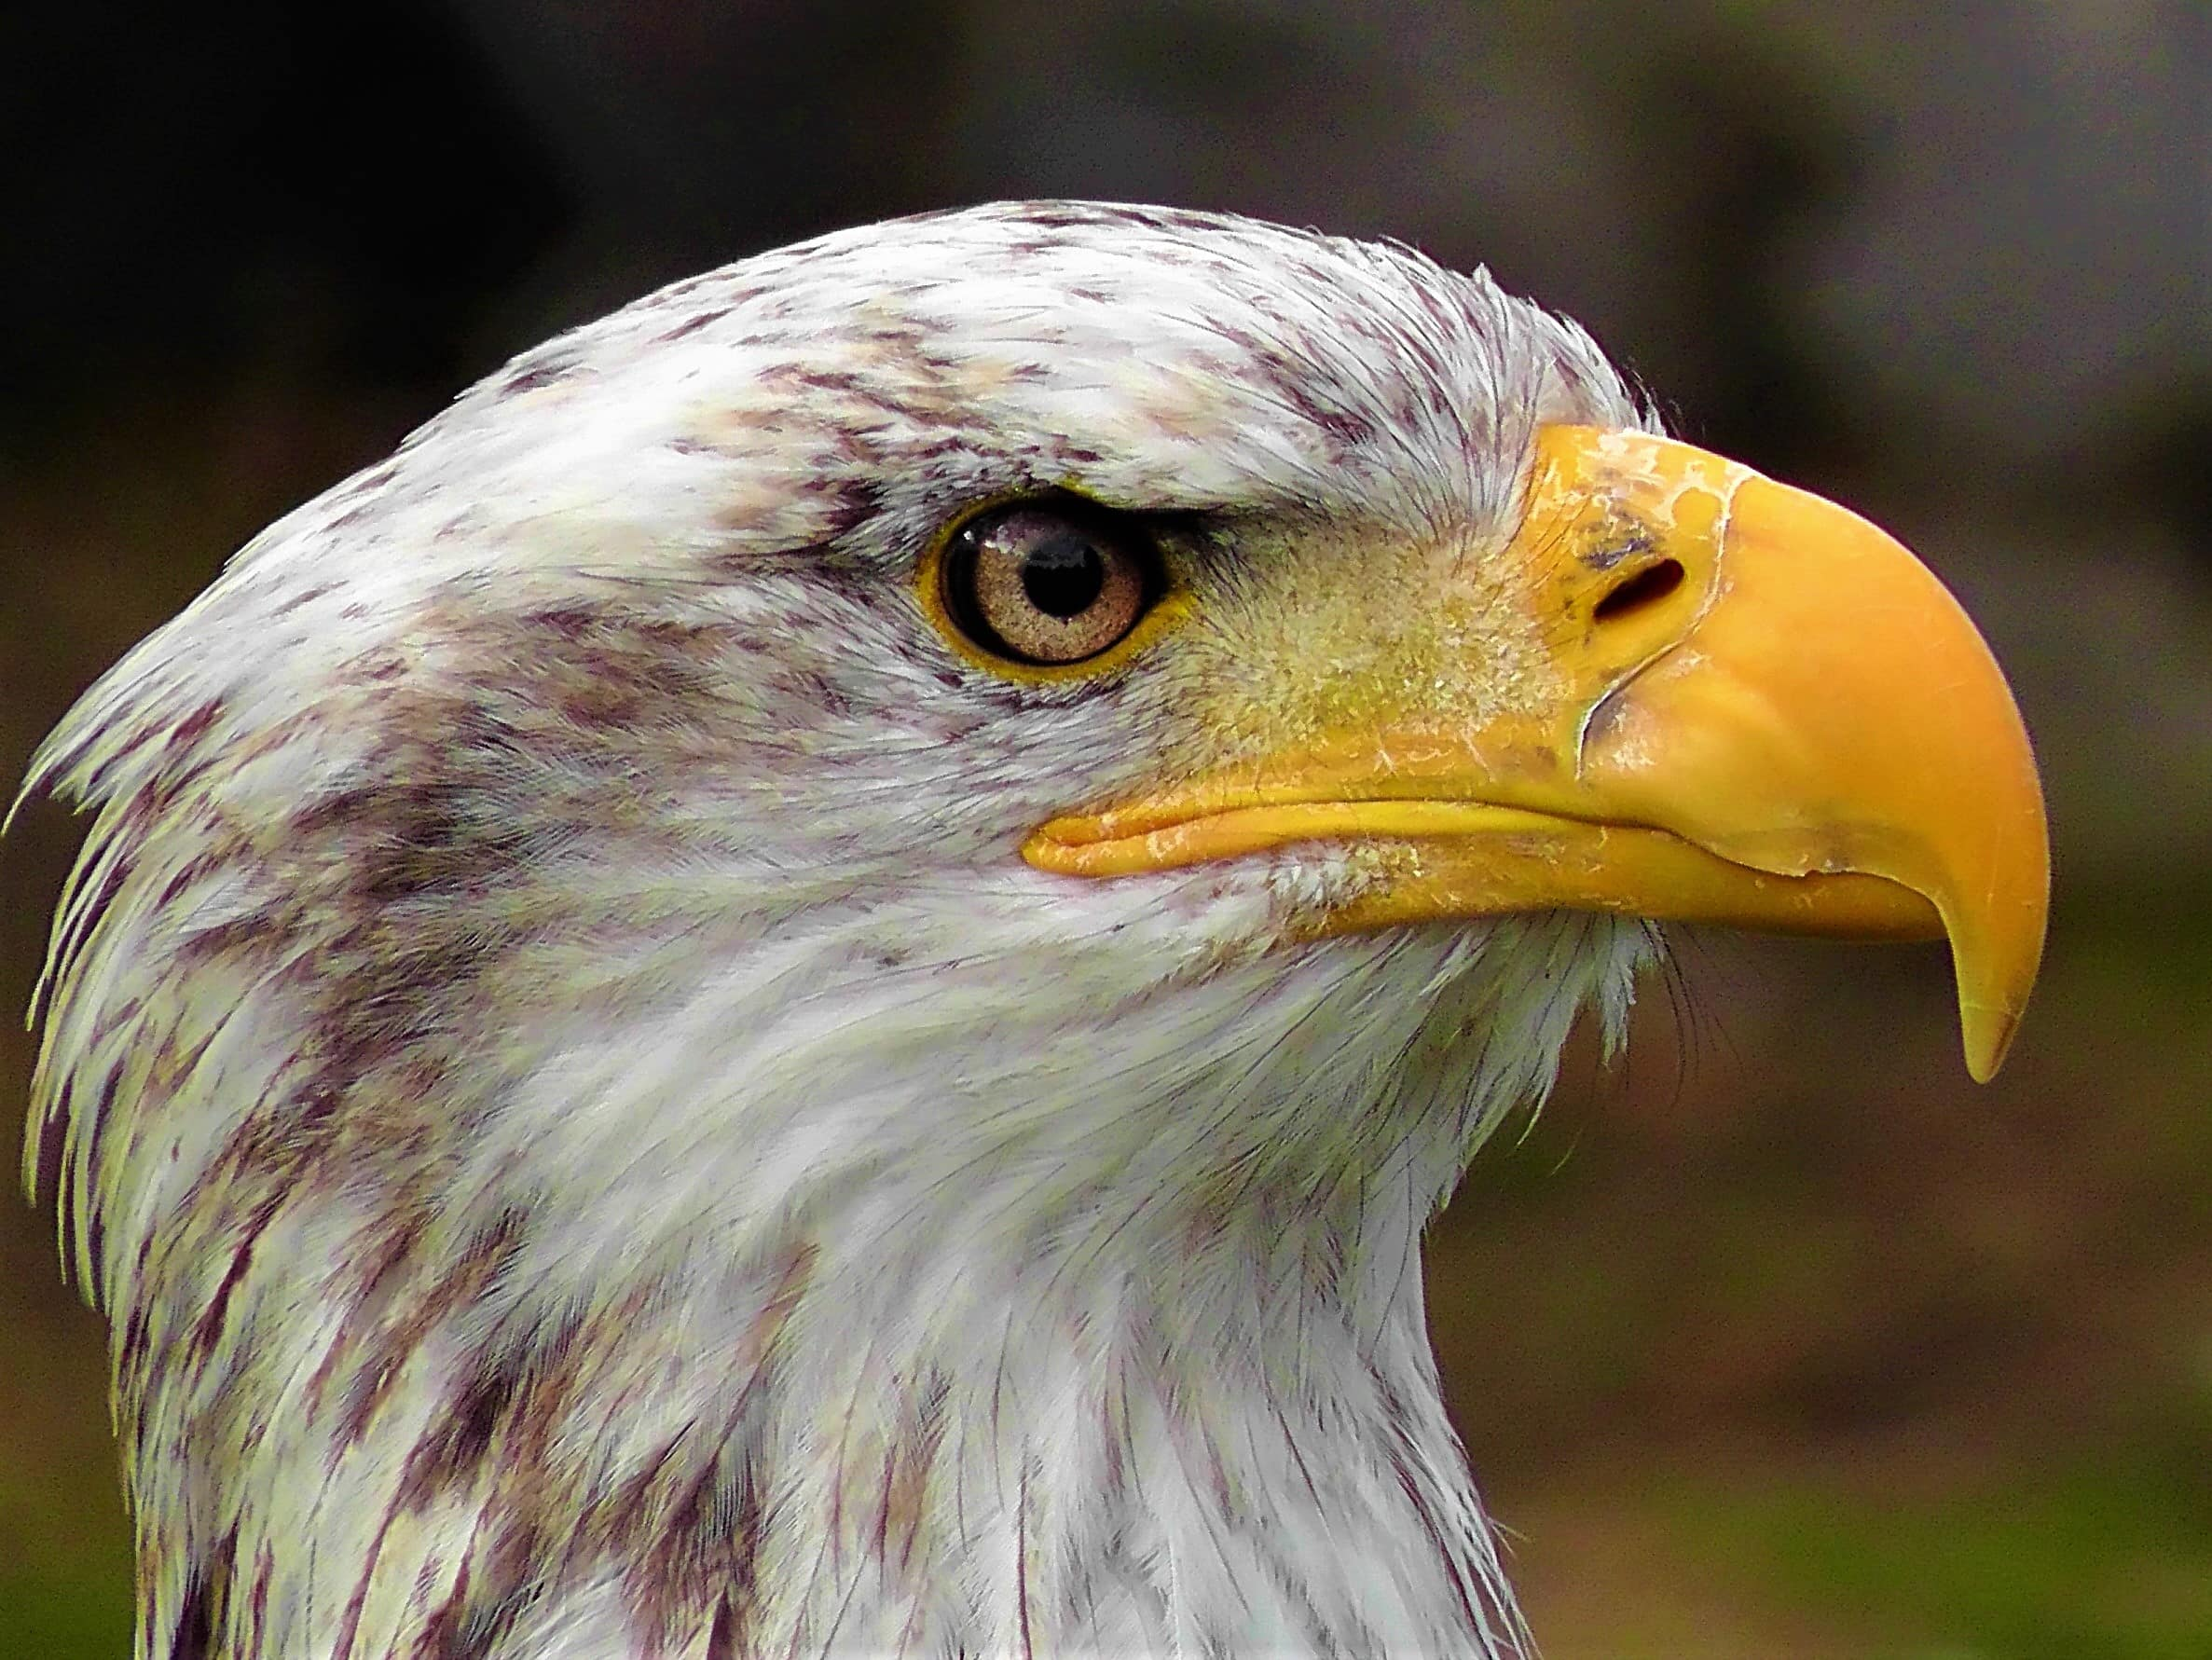 Face of the Bald Eagle